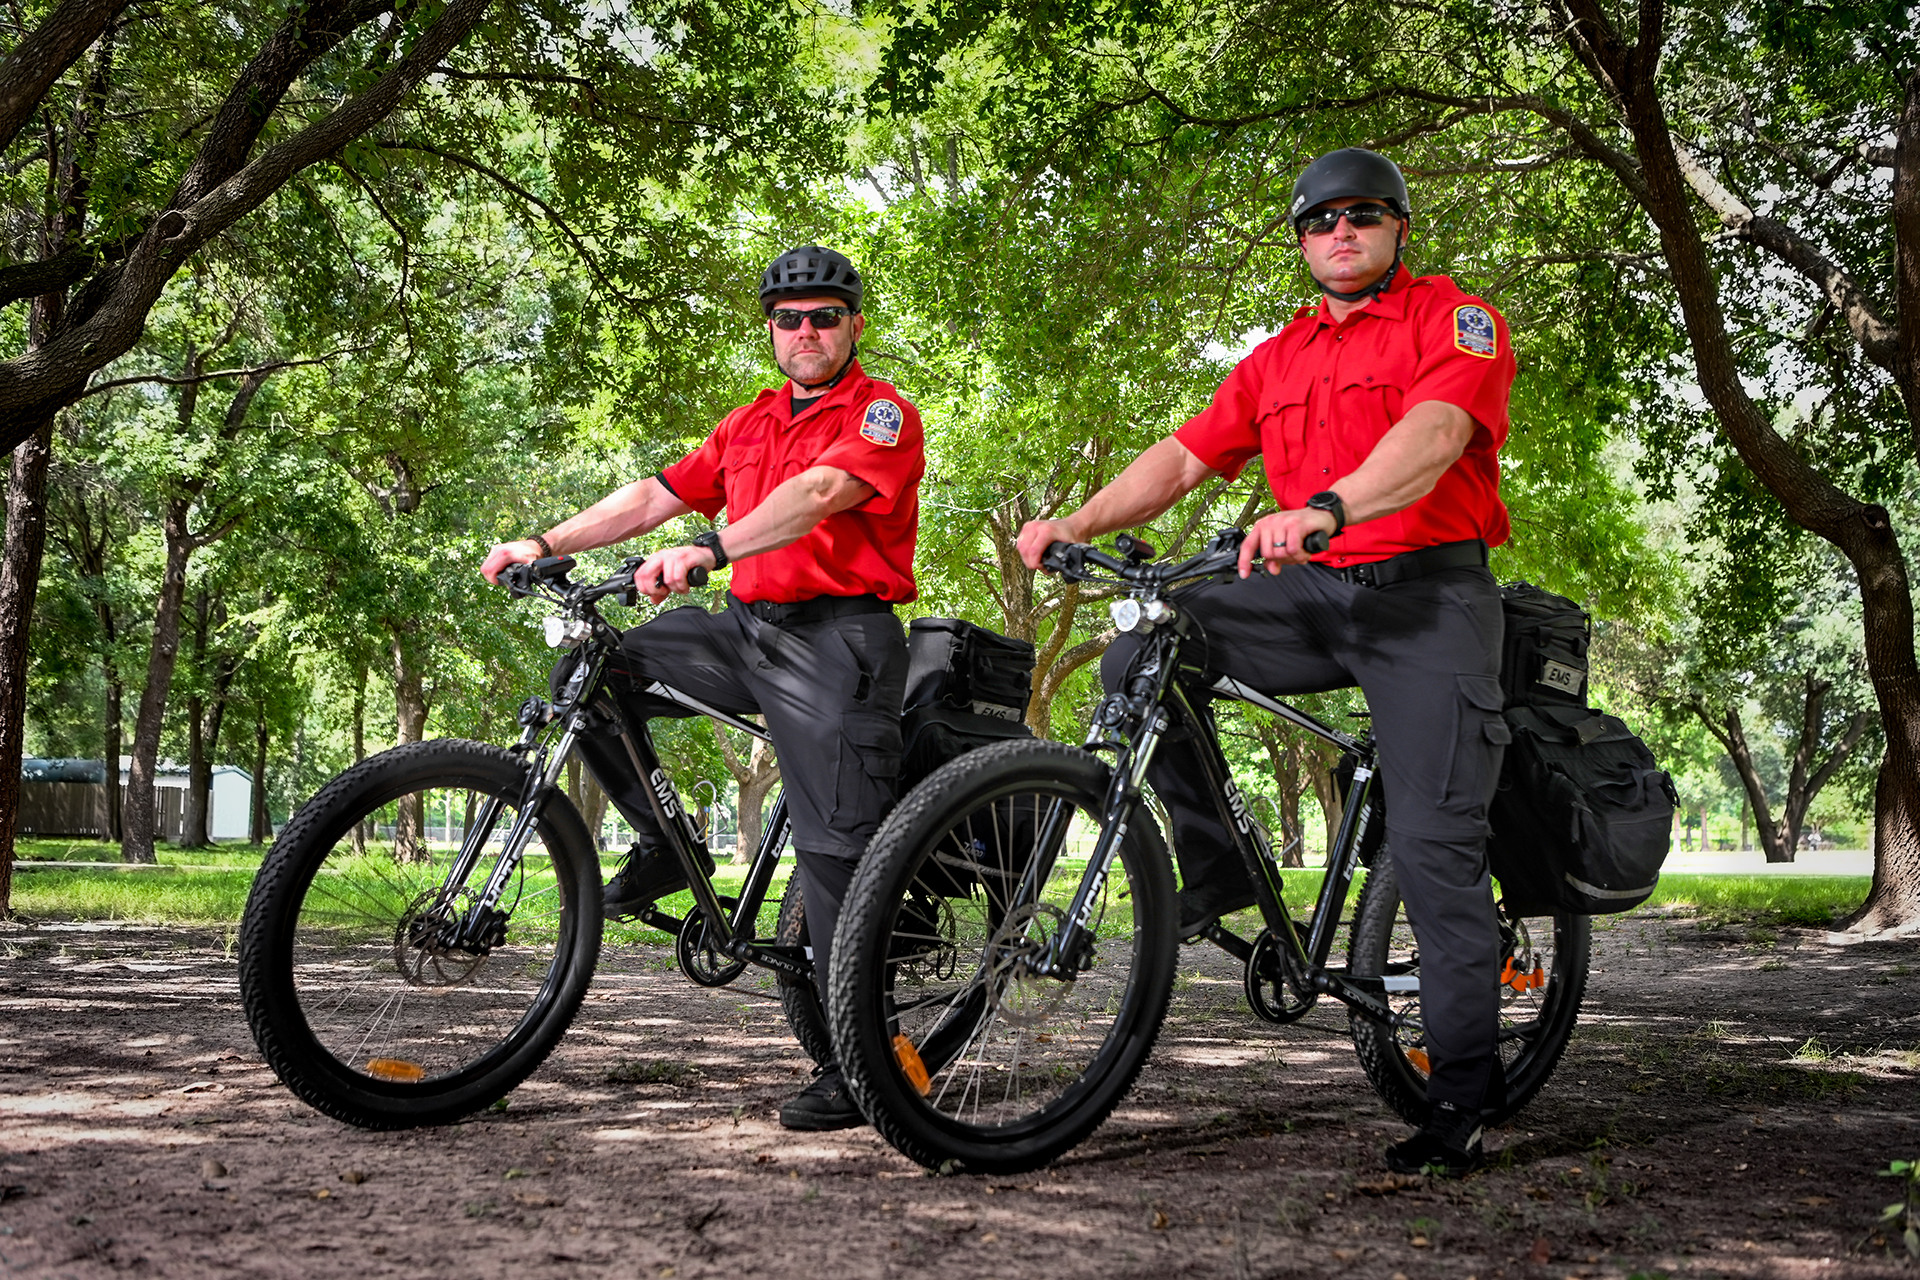 Medic Bike Team available for special events